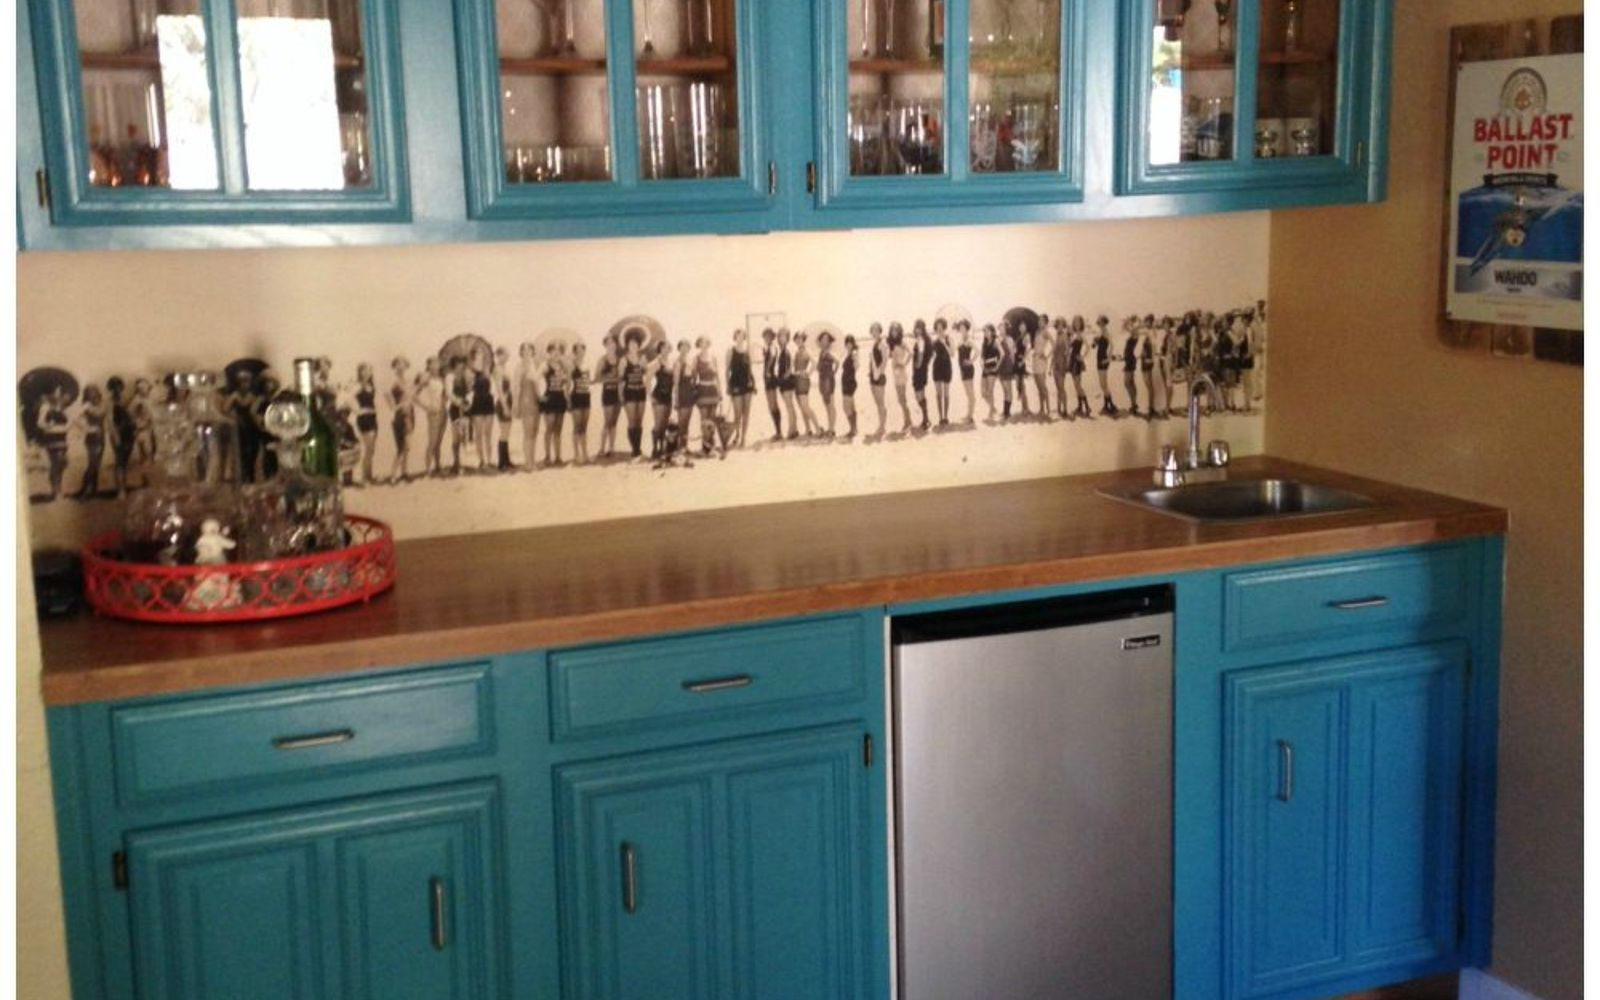 Images Of Backsplash Ideas: 13 Incredible Kitchen Backsplash Ideas That Aren't Tile